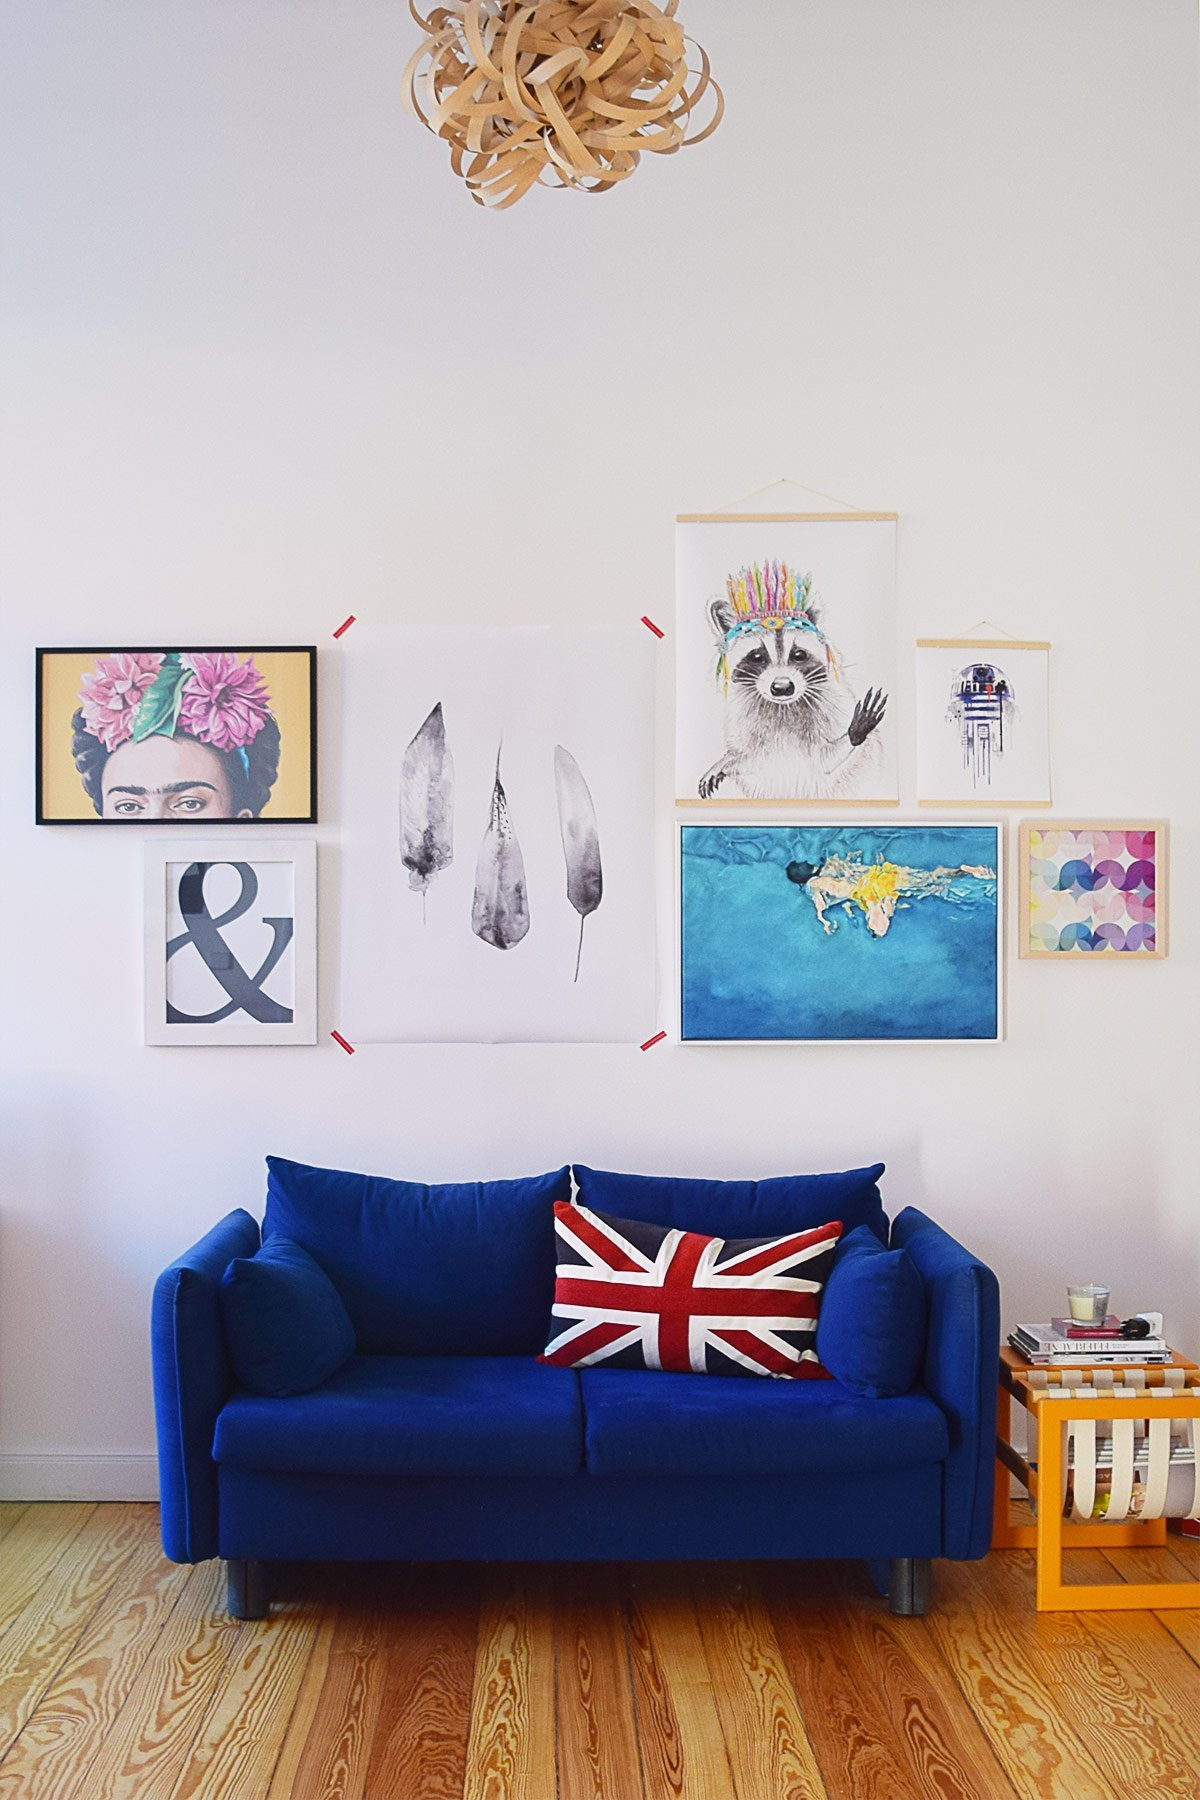 5 Tips For Creating A Motivational Home Office - Add Art - Gallery Wall | Little House On The Corner